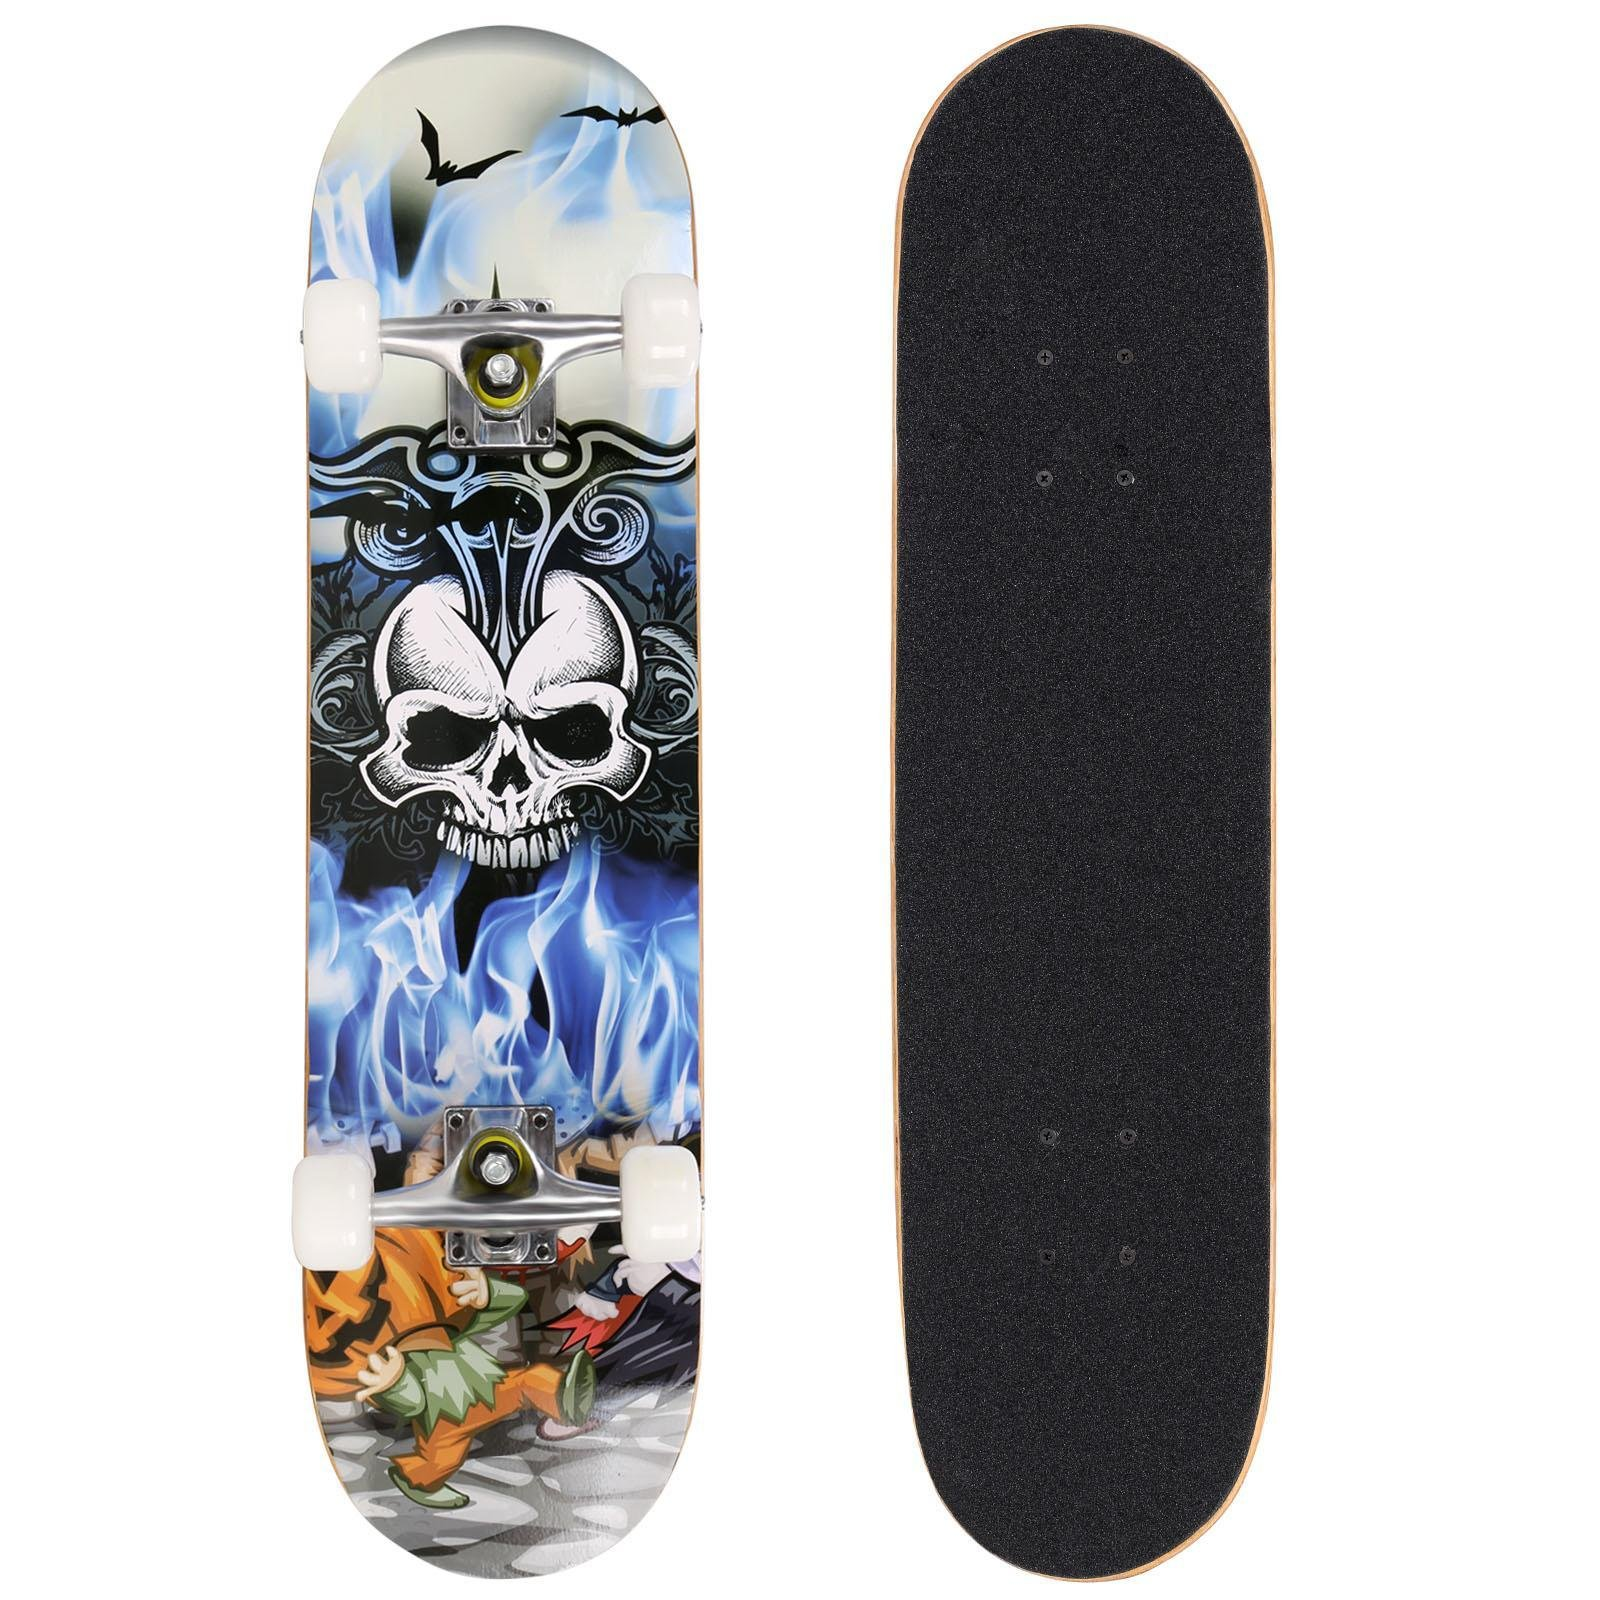 Vividy 31'' Canadian Maple Wood Deck Skateboard, PRO Print Wood board, Christmas Birthday Gift for Age 5+, Max Load-220lbs (US STOCK) (Skull)